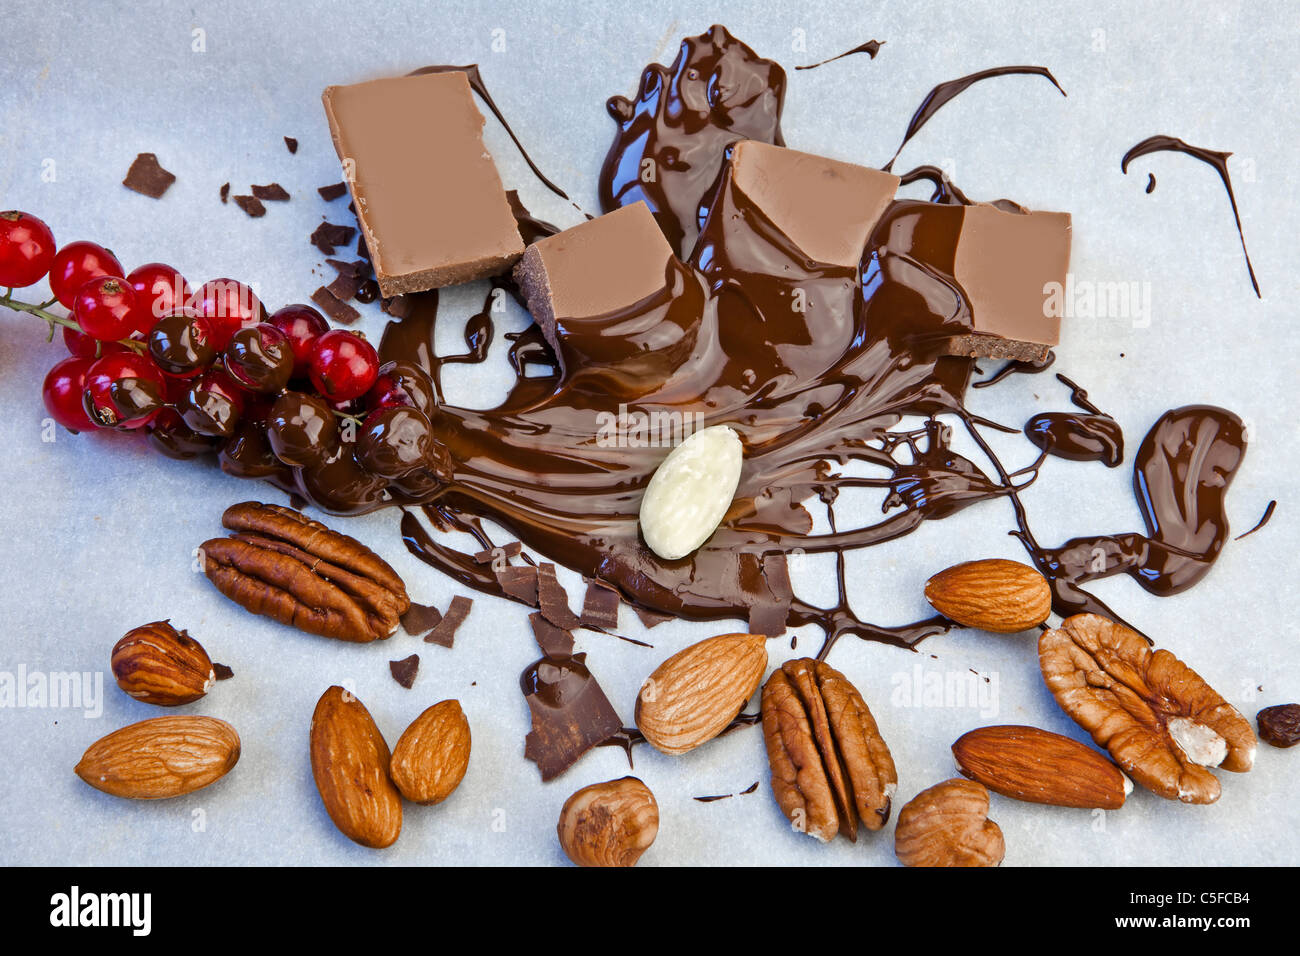 smooth chocolate pieces with chocolate sauce and nuts, and red currants - Stock Image